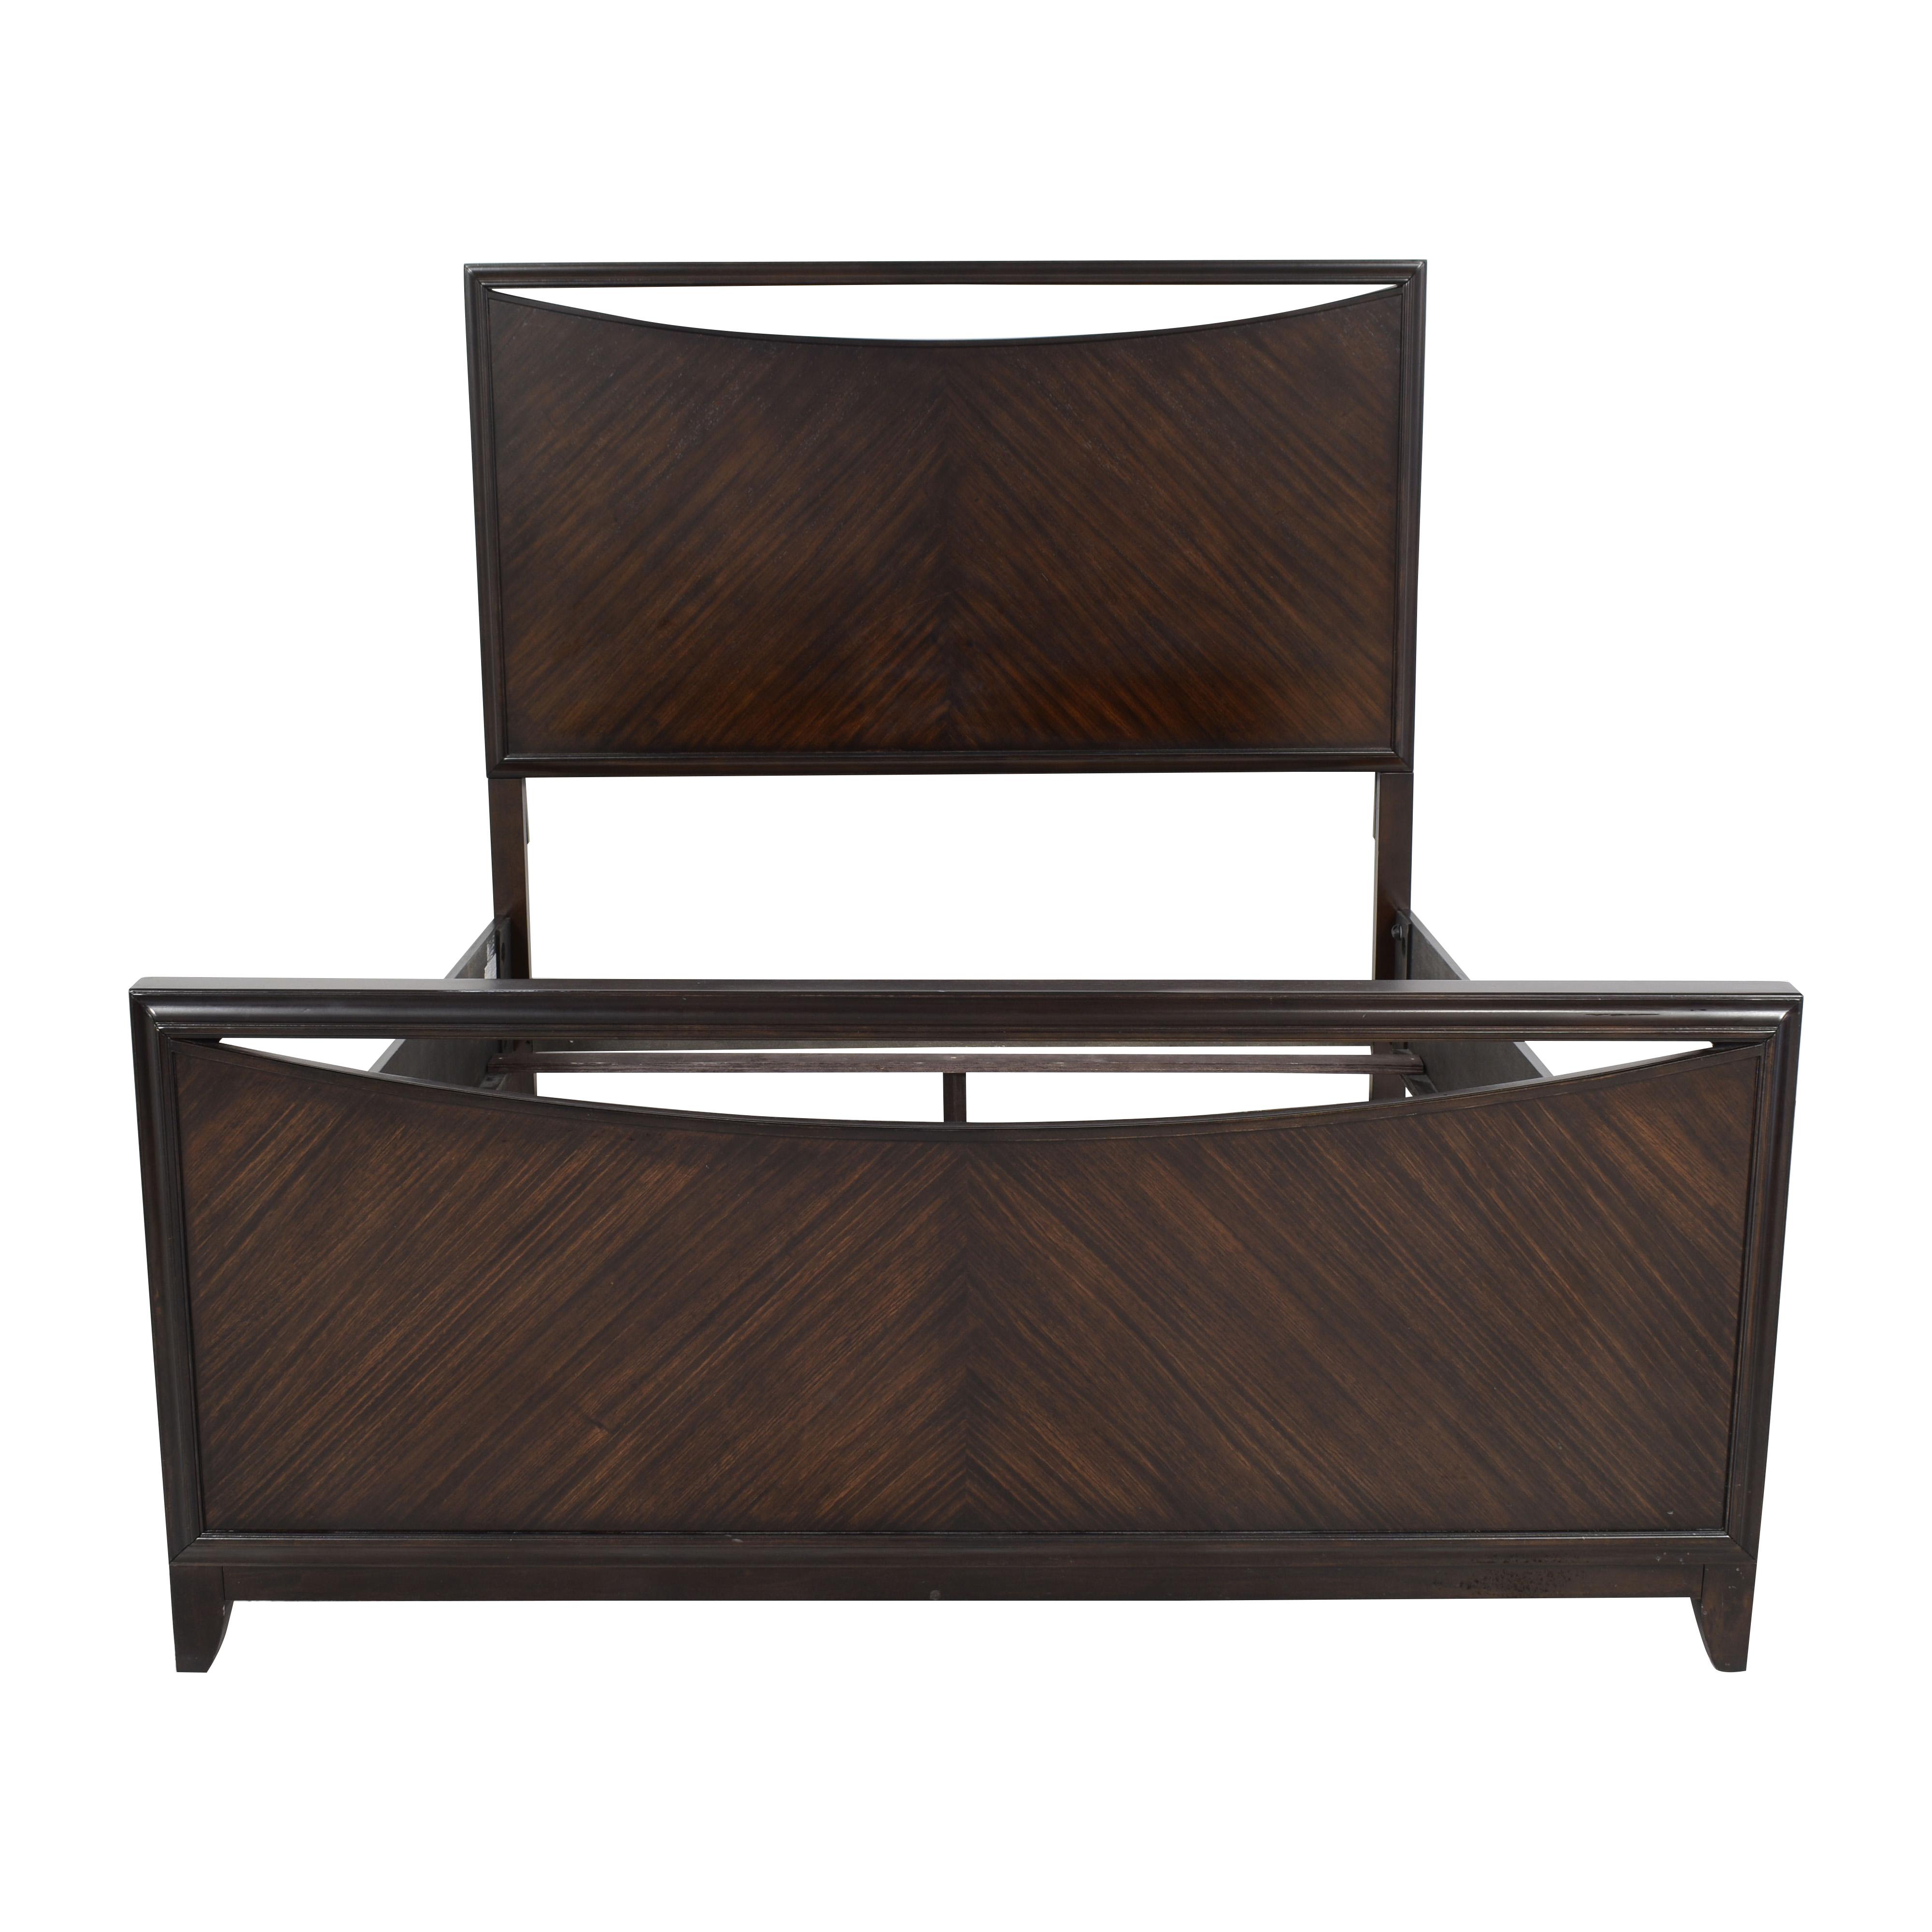 Raymour & Flanigan Raymour & Flanigan Anja Queen Bed with High Headboard discount